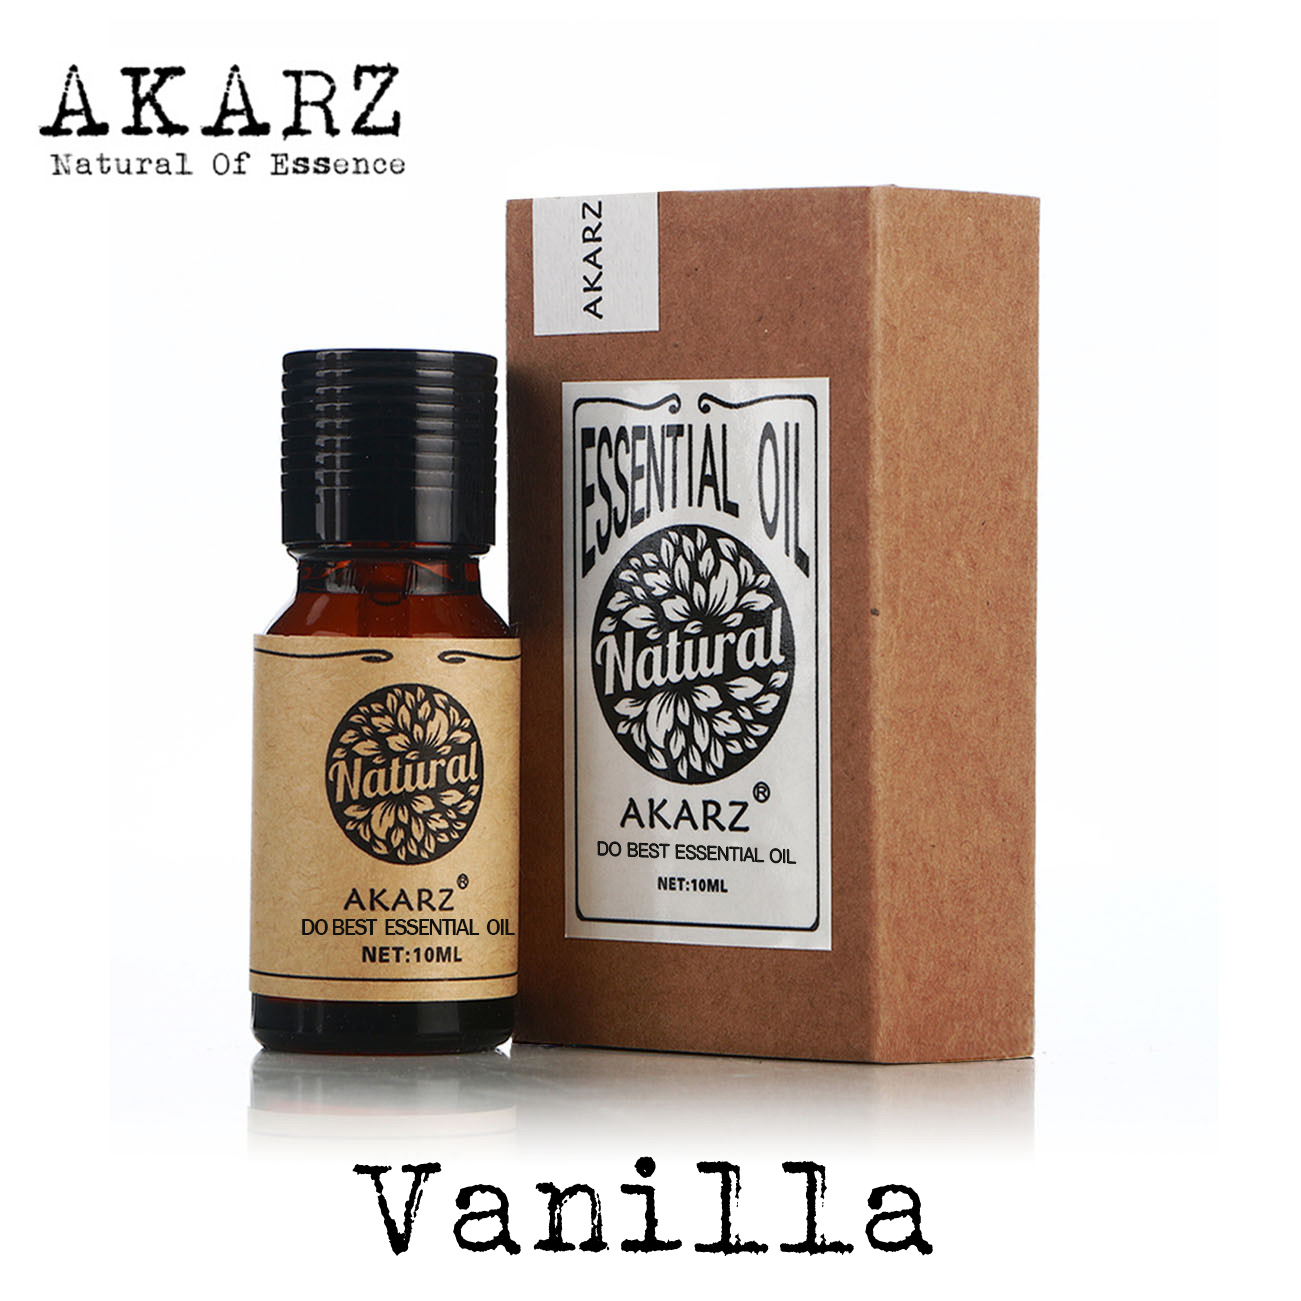 AKARZ Essential-Oil Antidepressant Natural Emotion Stable Famous-Brand Of Ease Mind